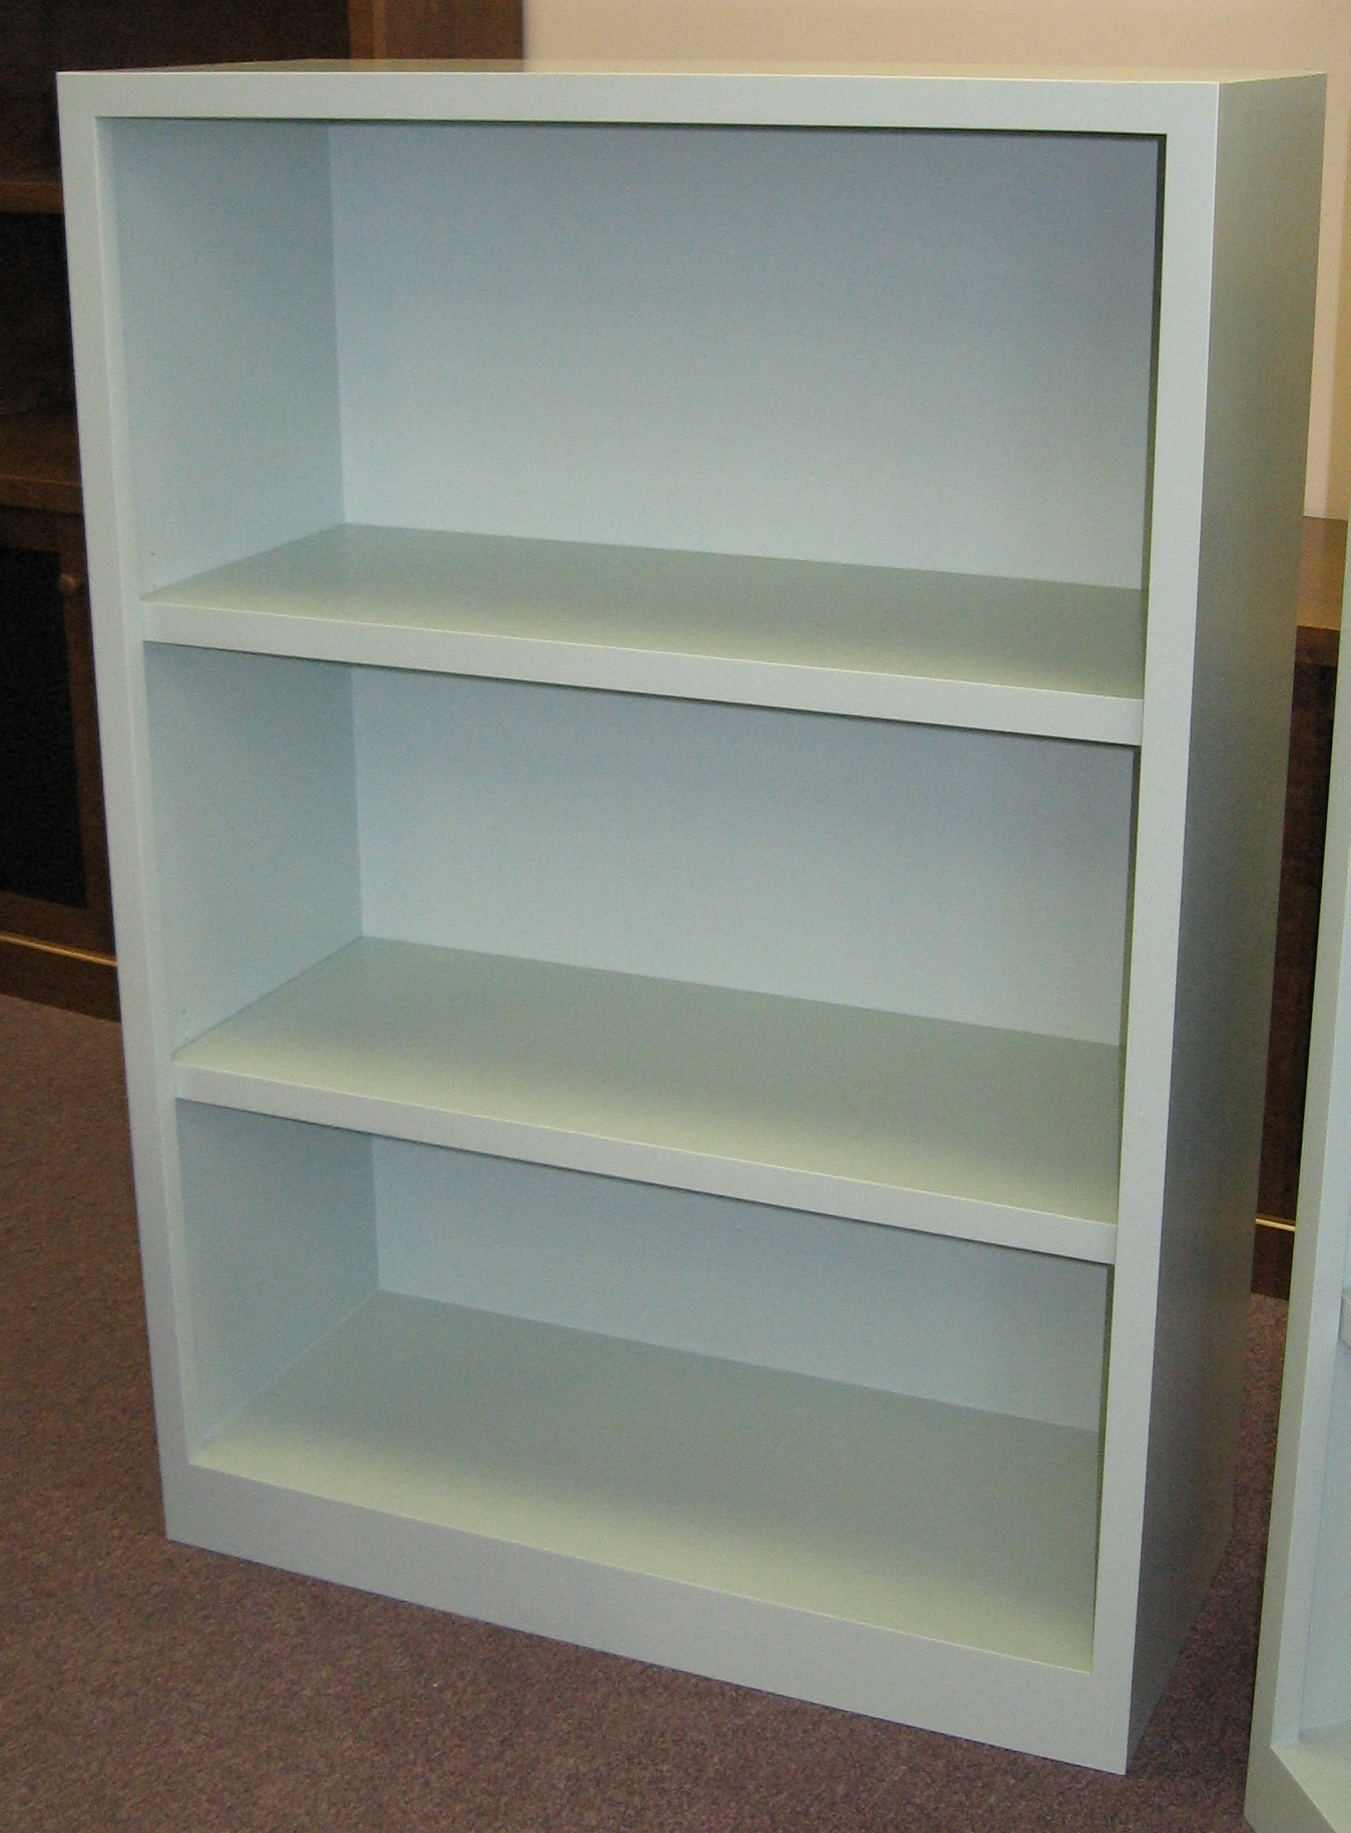 modern-style-white-office-book-shelf.JPG